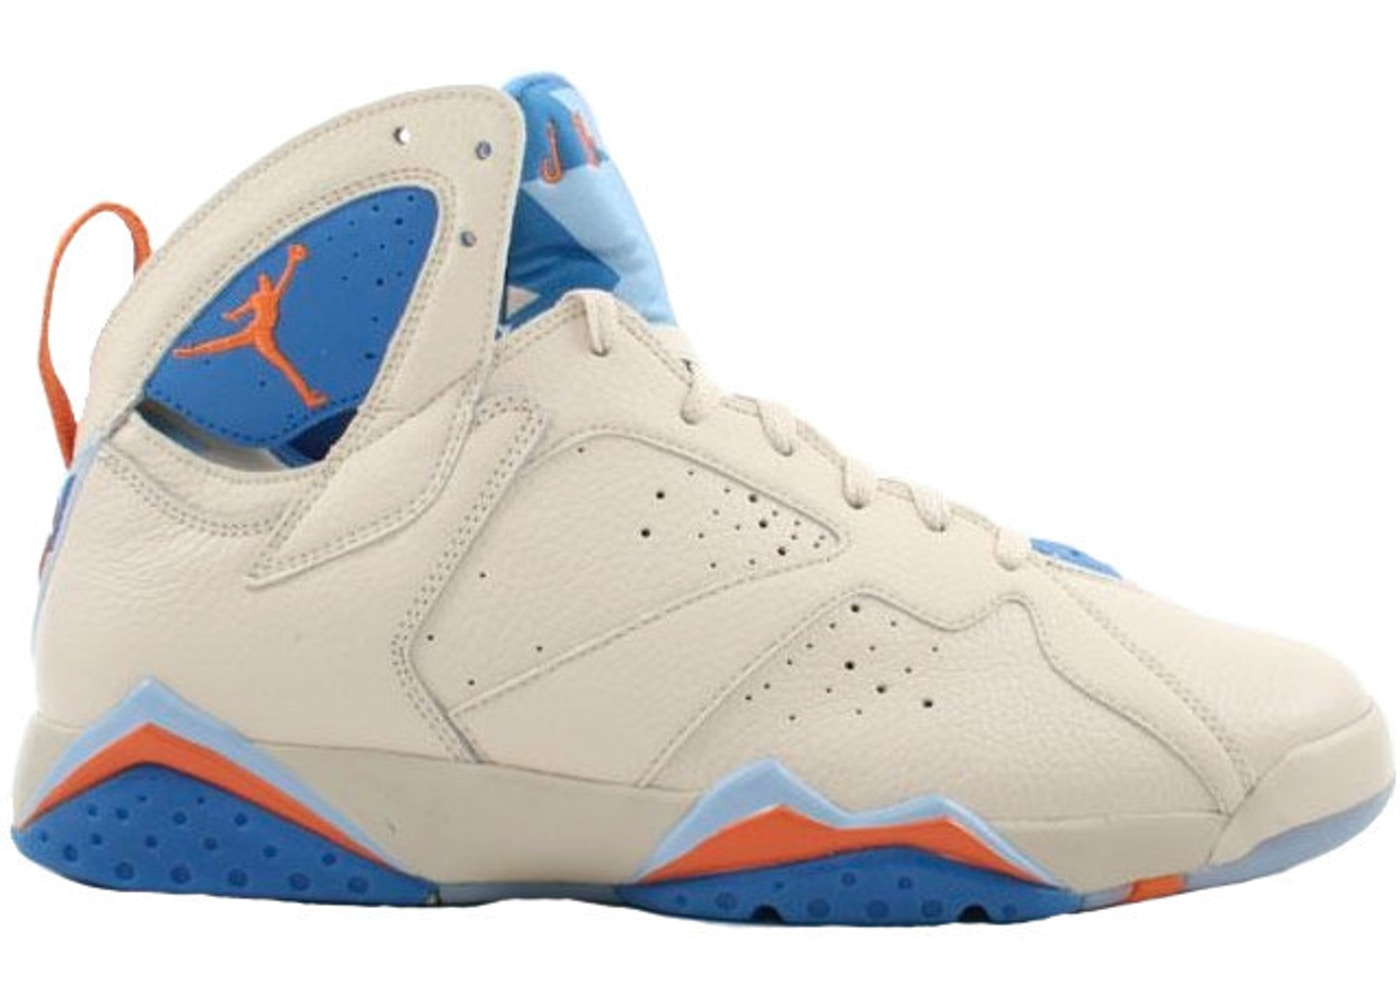 competitive price 0a82d 5f431 Jordan 7 Retro Pacific Blue